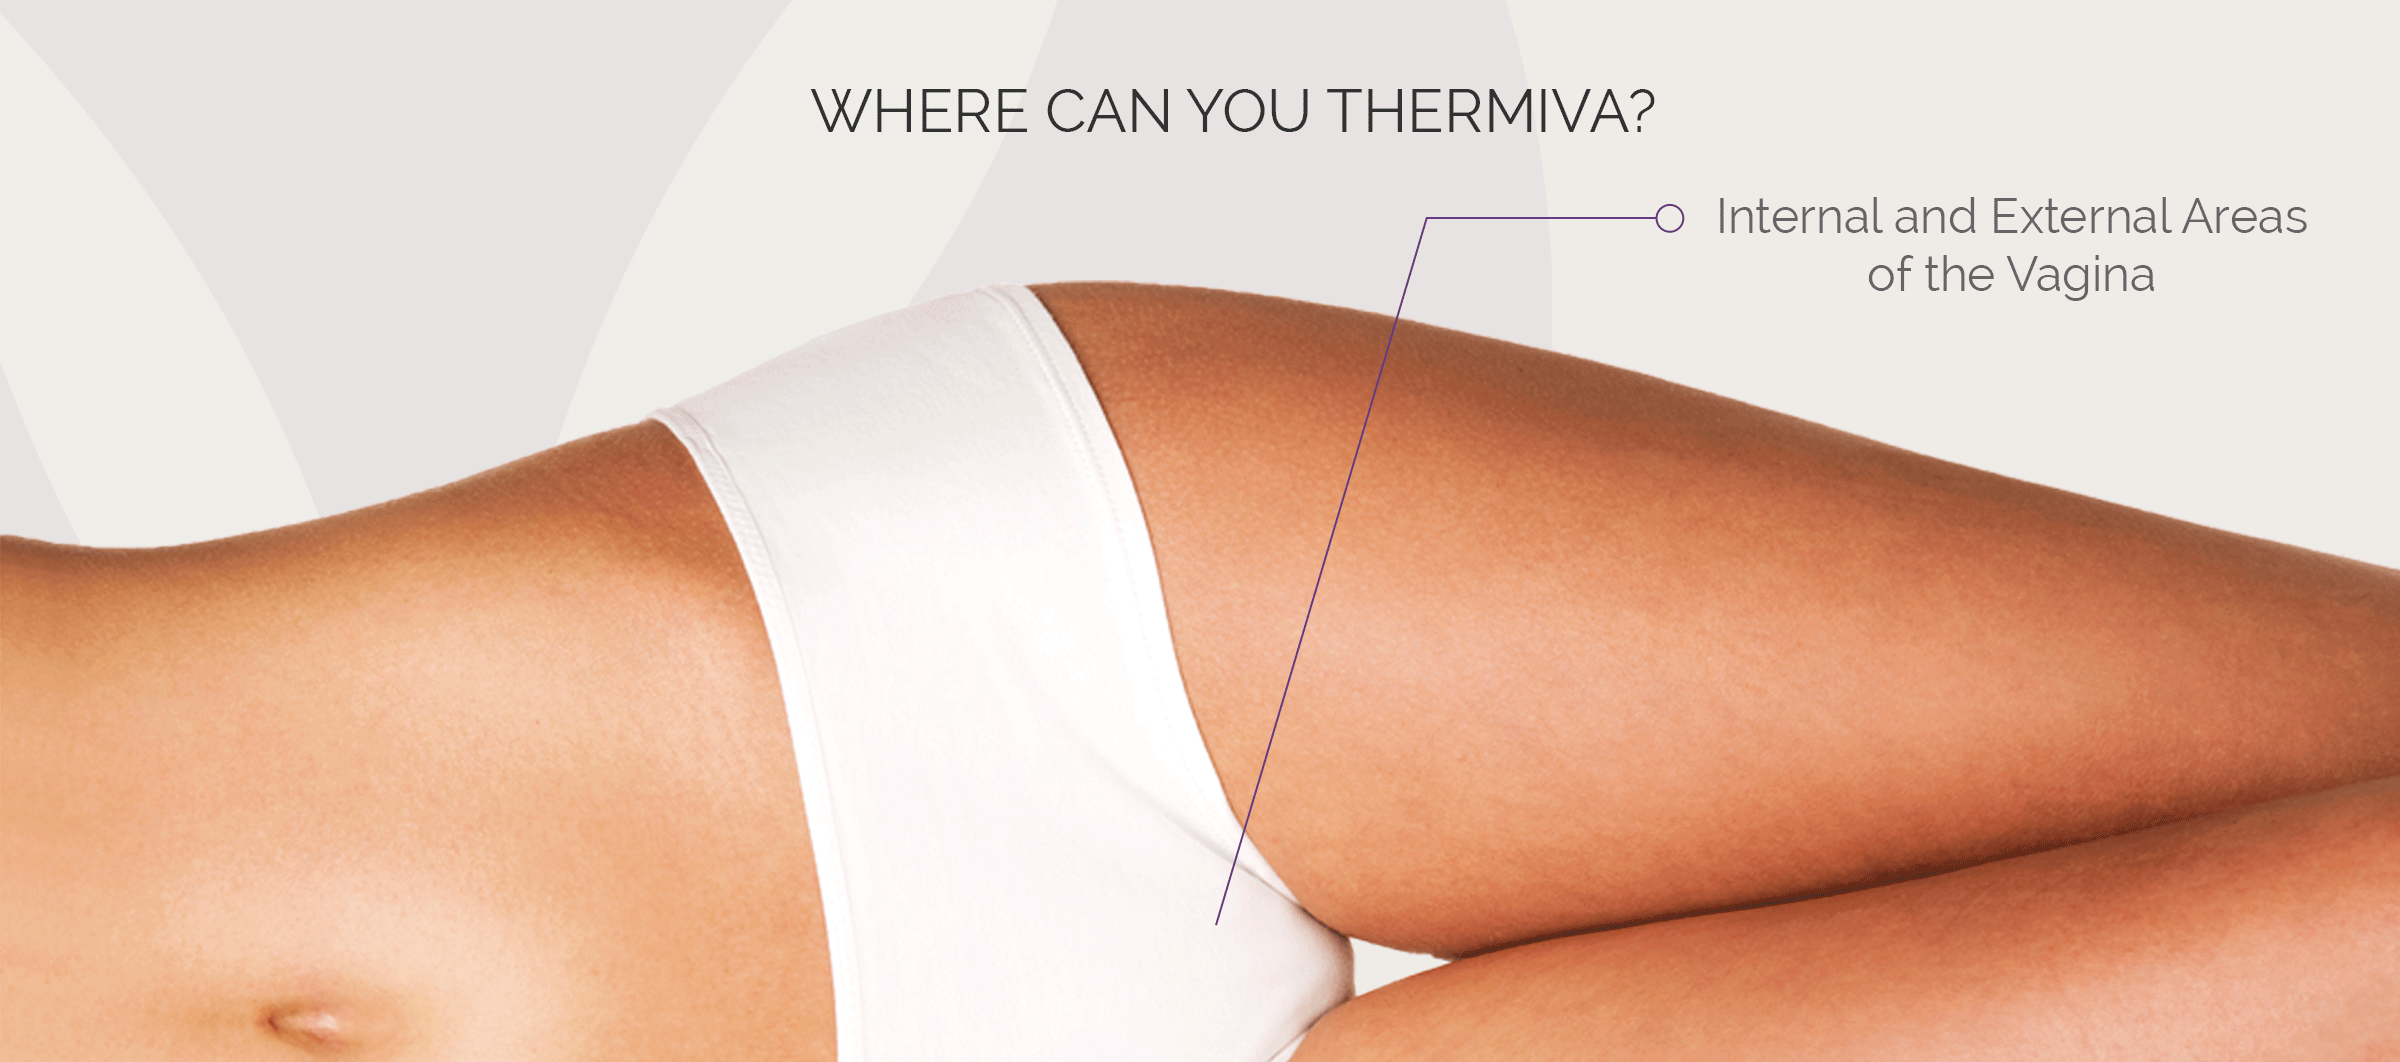 FAQ about ThermiVa and Vaginal Rejuvenation